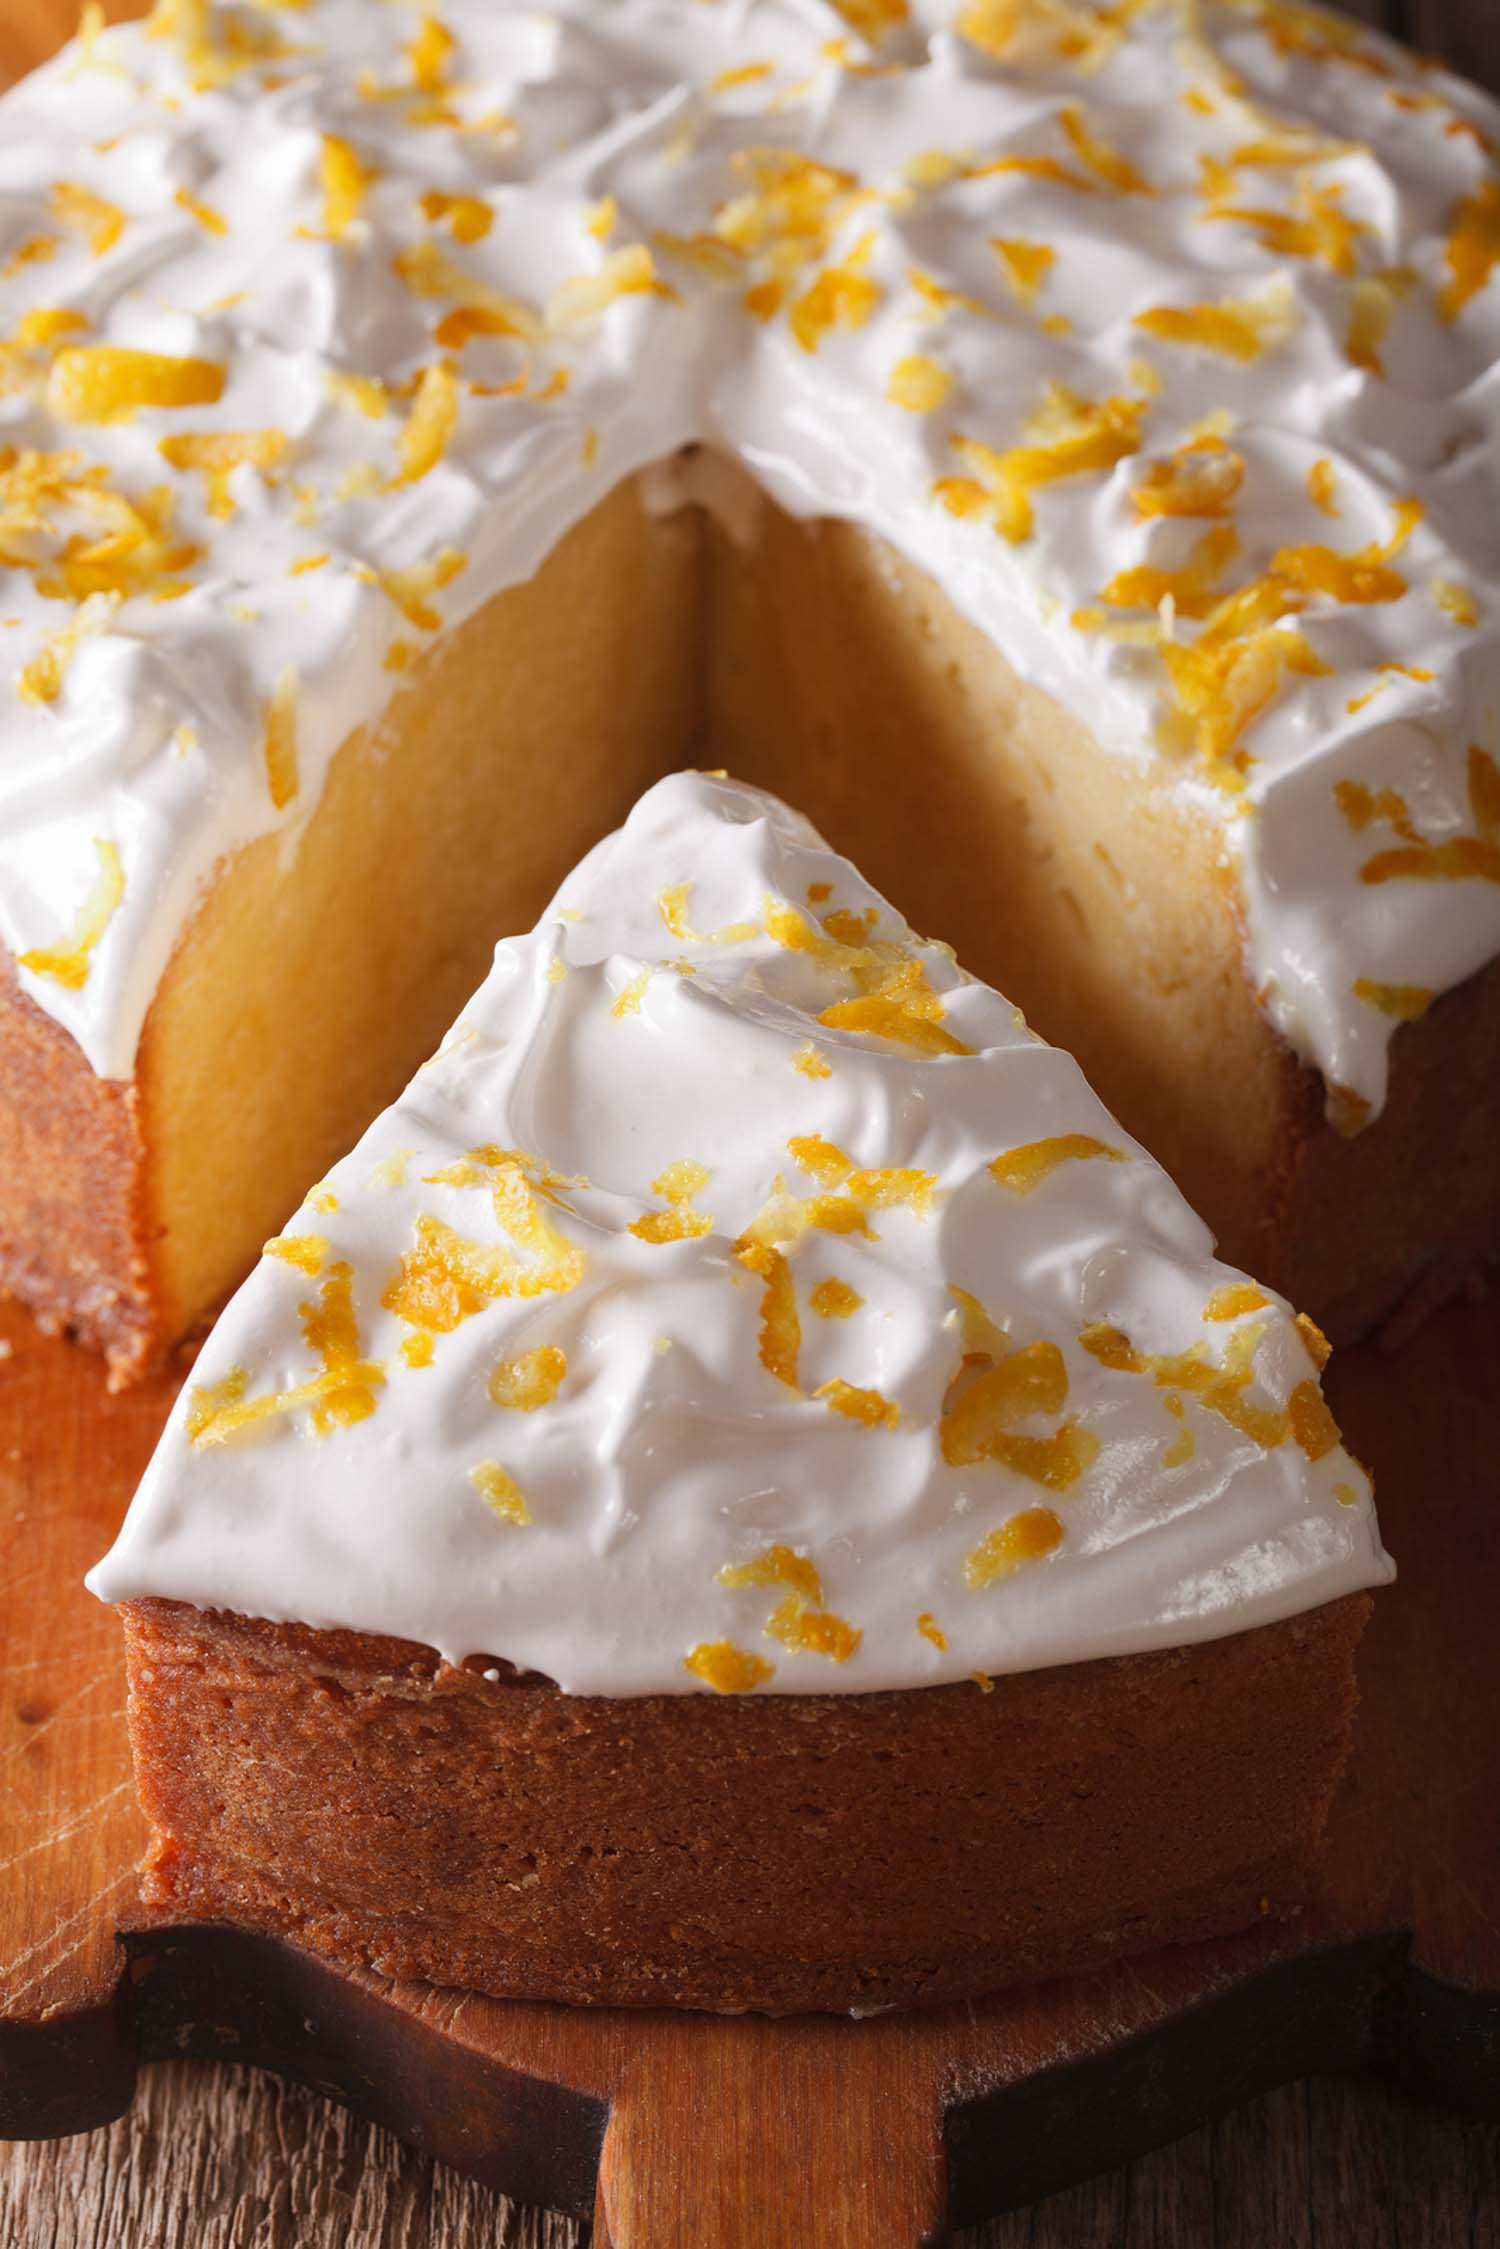 One of the most iconic Colombian desserts is the tres leches torta cake.